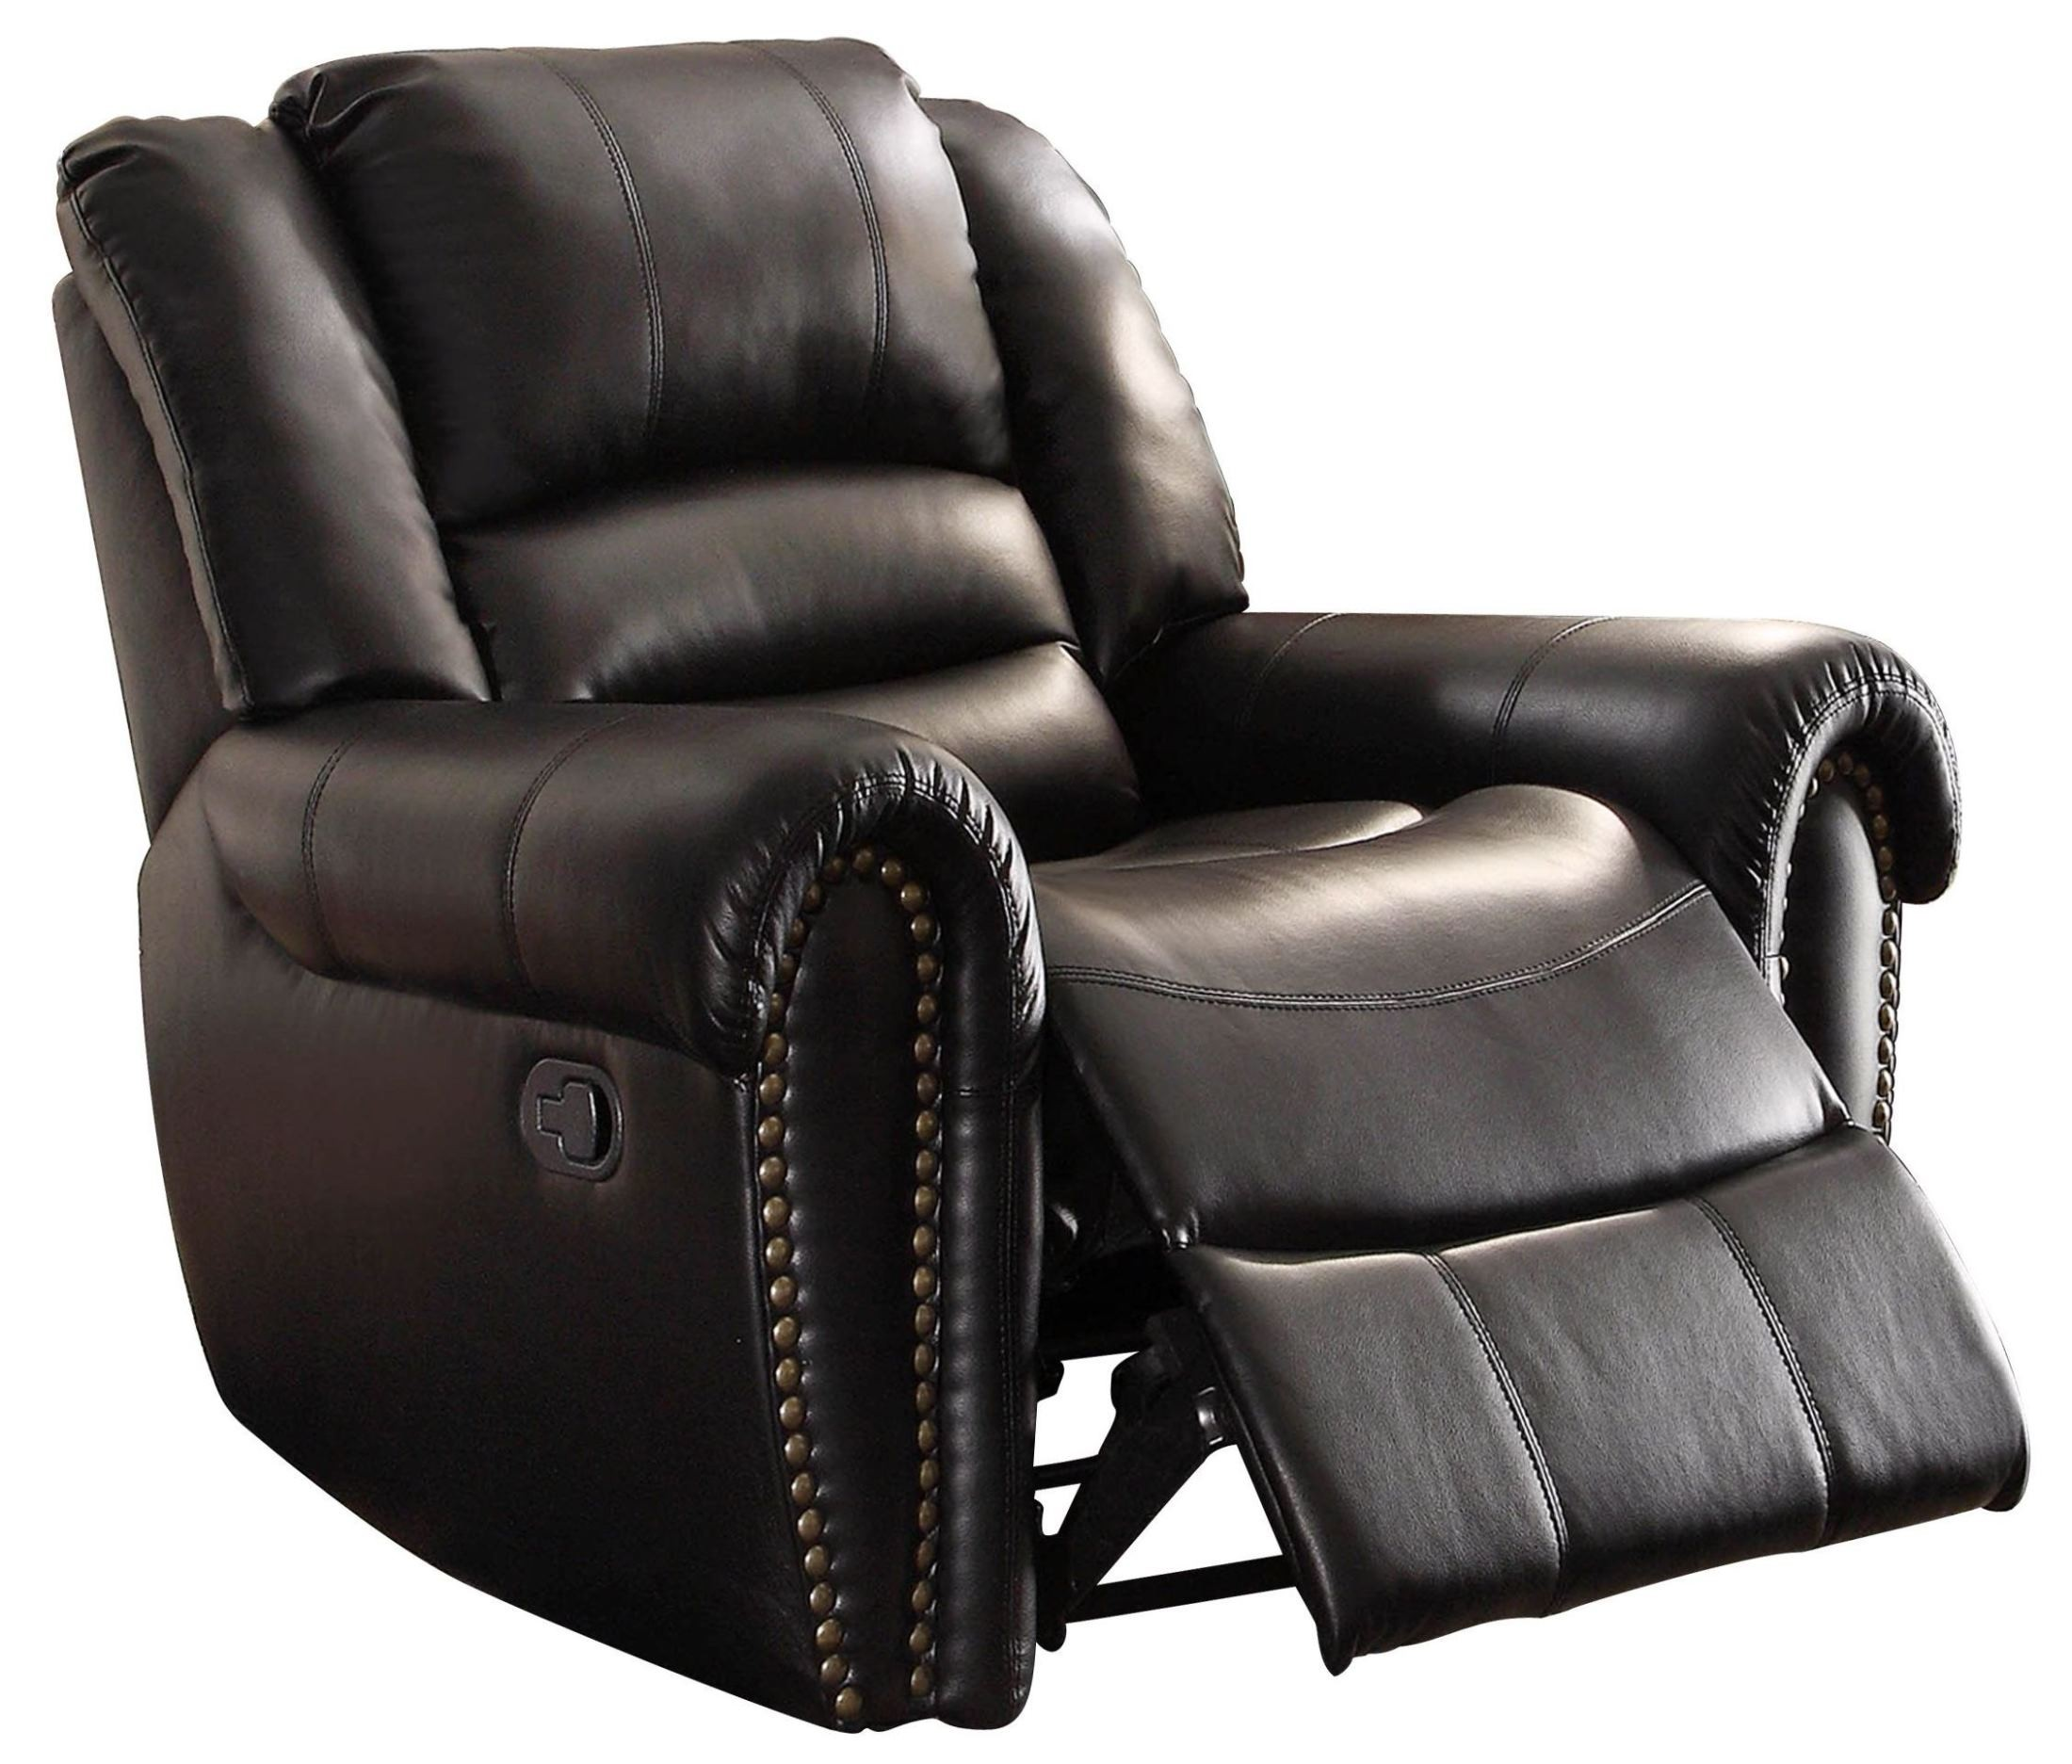 Center Hill Black Double Reclining Living Room Set from